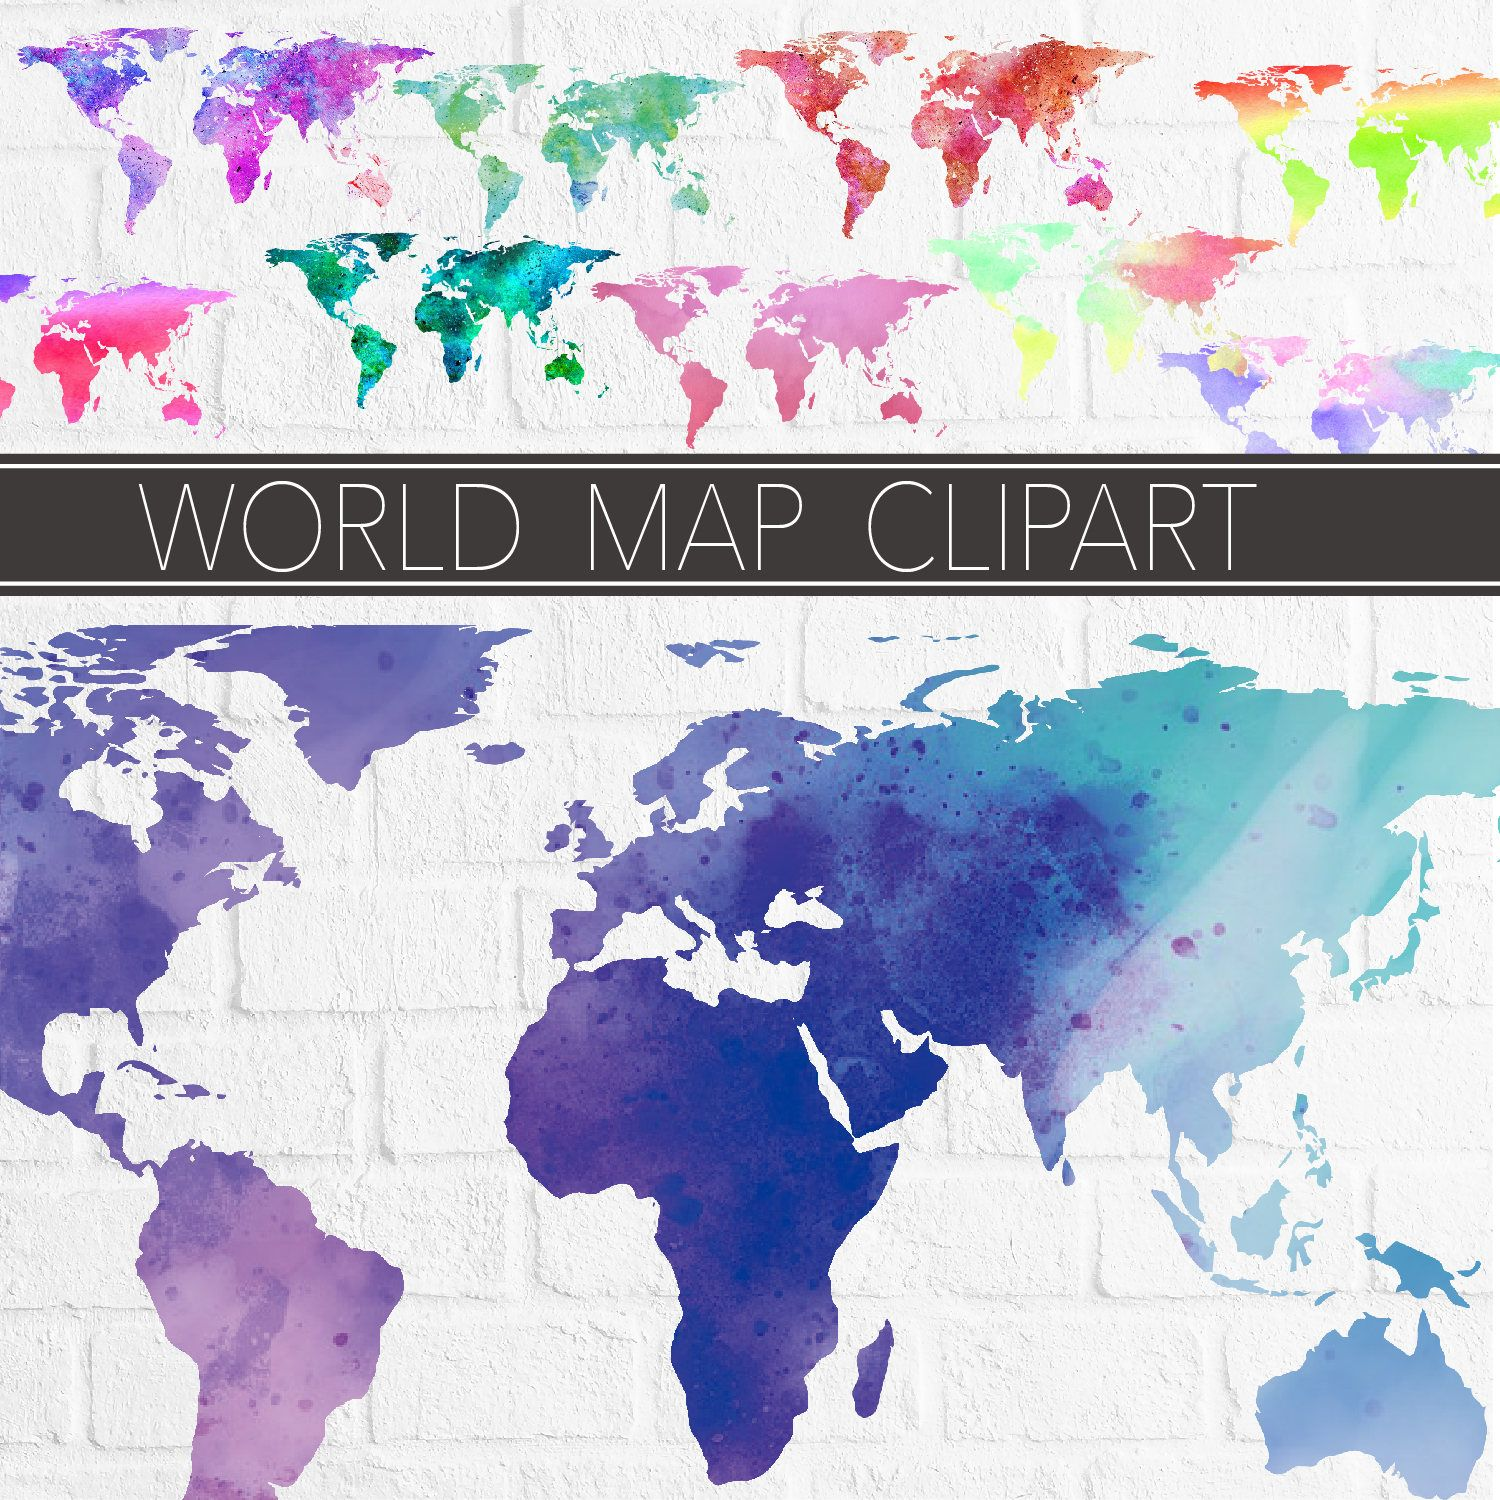 World map clipart set clip art illustrations graphics artwork world map clipart set clip art illustrations graphics artwork digital clipart craft supplies hand drawn art gumiabroncs Images